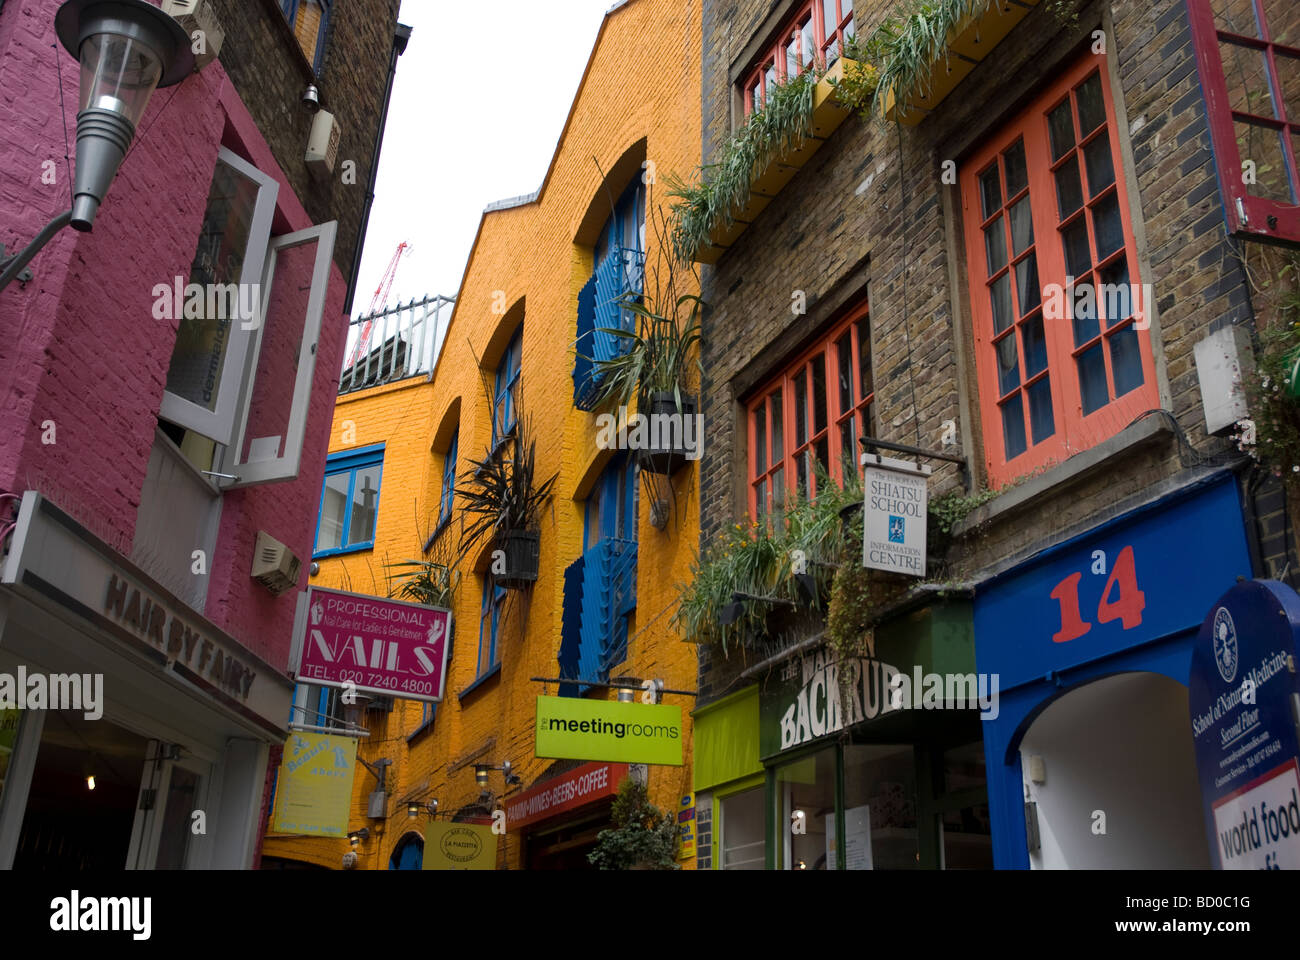 Neals Yard Covent Garden London Stock Photos & Neals Yard Covent ...